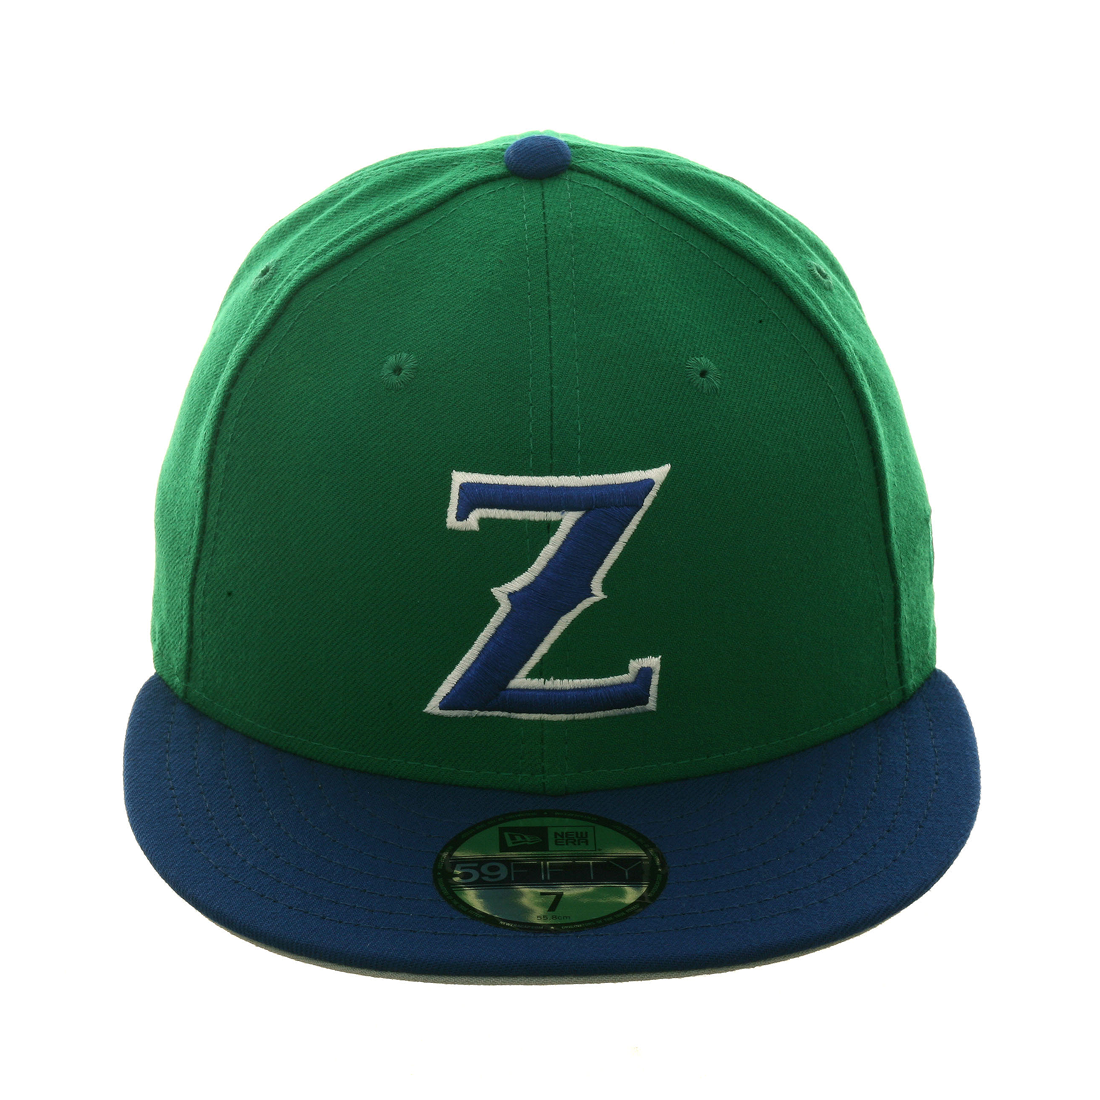 Exclusive New Era 59Fifty Denver Zephyrs Hat - 2T Kelly Green, Royal